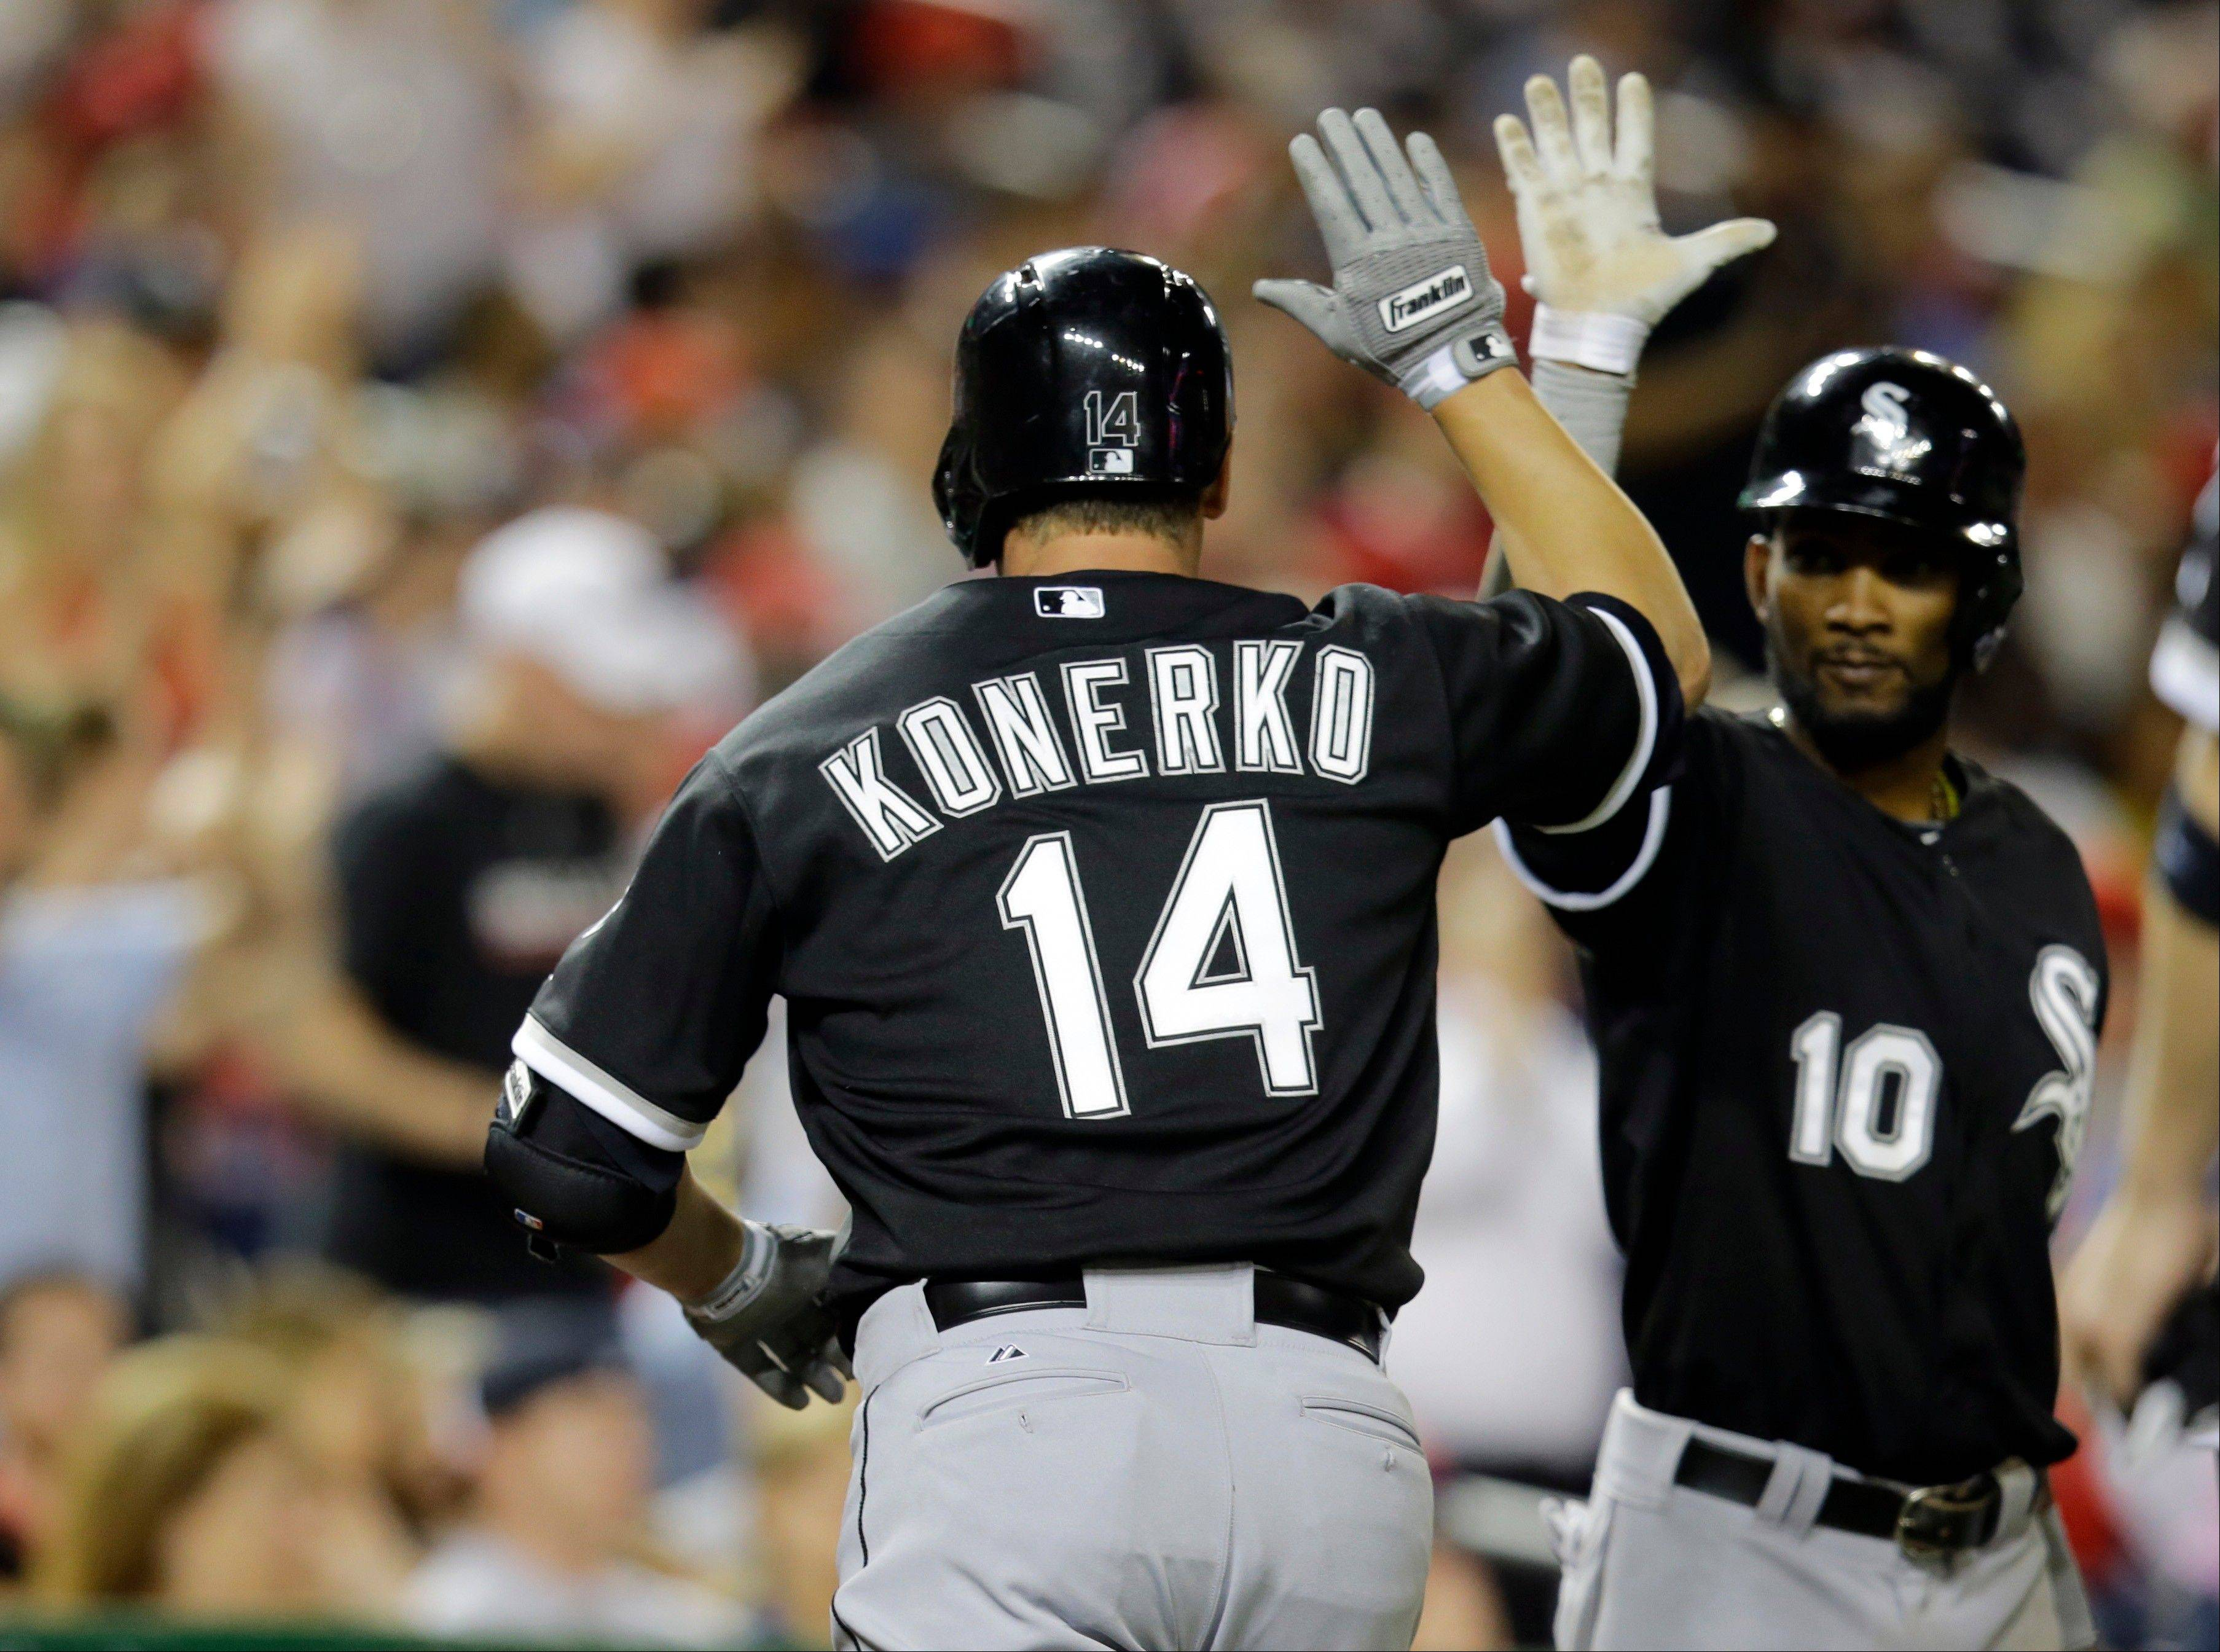 The White Sox' Paul Konerko celebrates with shortstop Alexei Ramirez (10) after his 3-run homer in the seventh inning Tuesday against the Nationals.